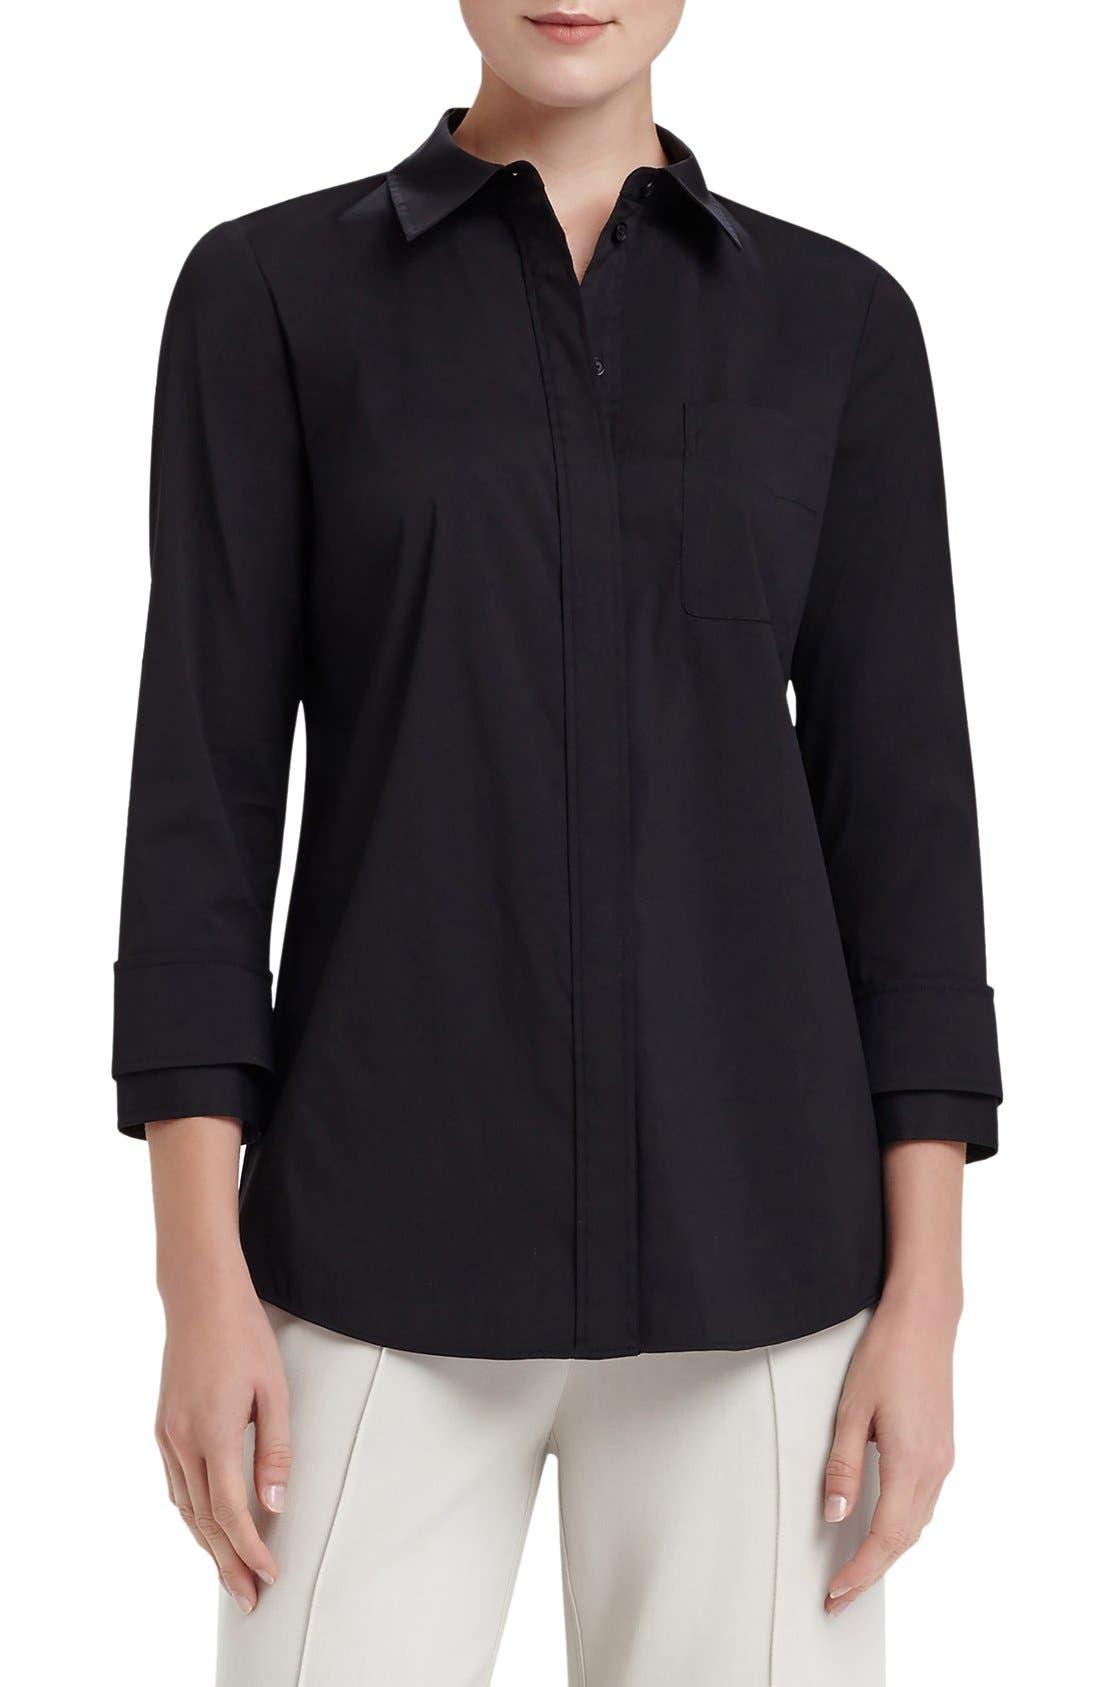 Alternate Image 1 Selected - Lafayette 148 New York 'Emerson' Stretch Poplin Blouse